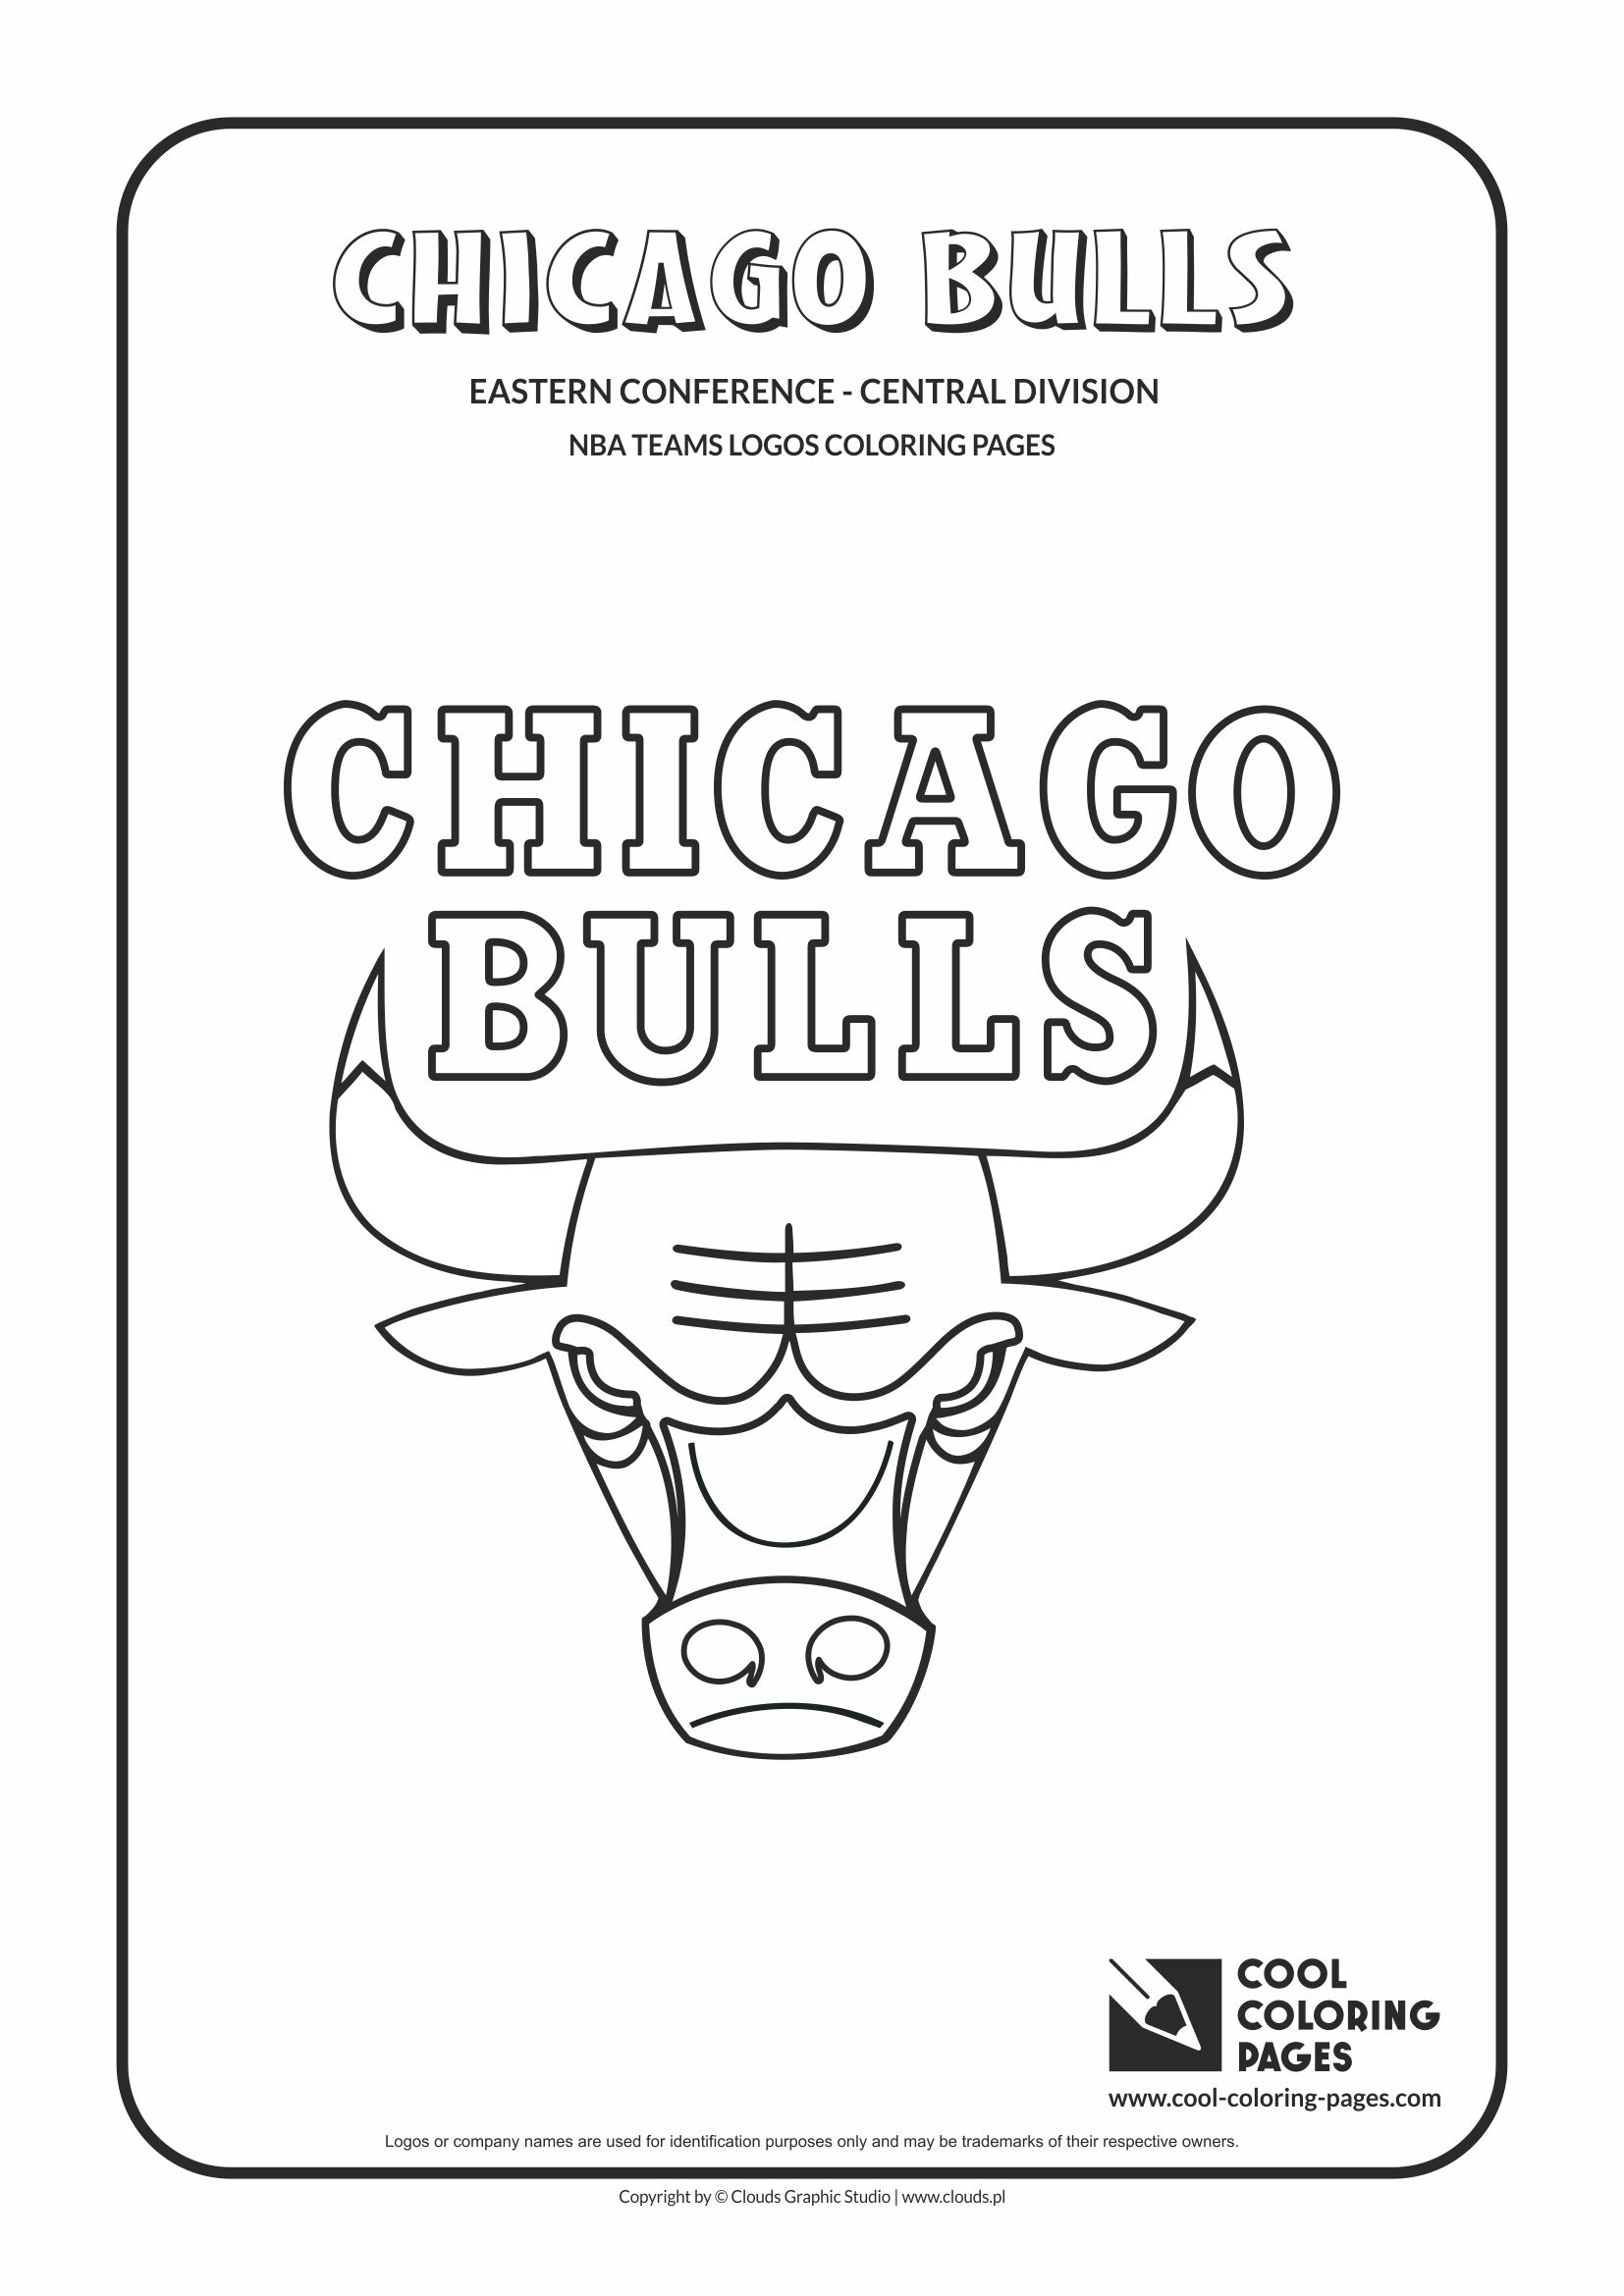 Cool Coloring Pages Chicago Bulls - NBA basketball teams logos ...